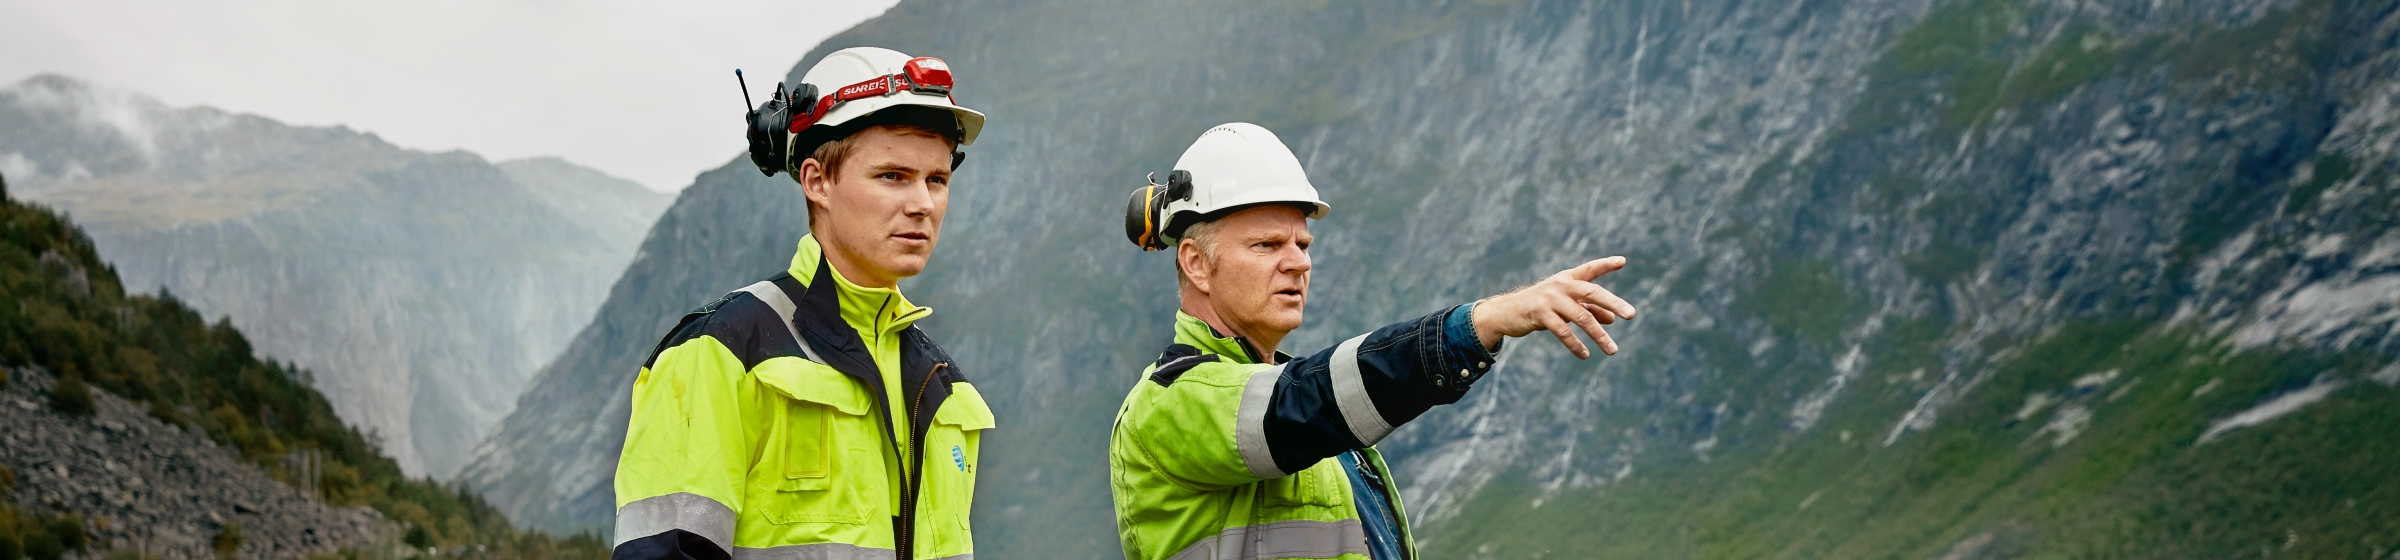 Statkraft employees at the Ringedals dam